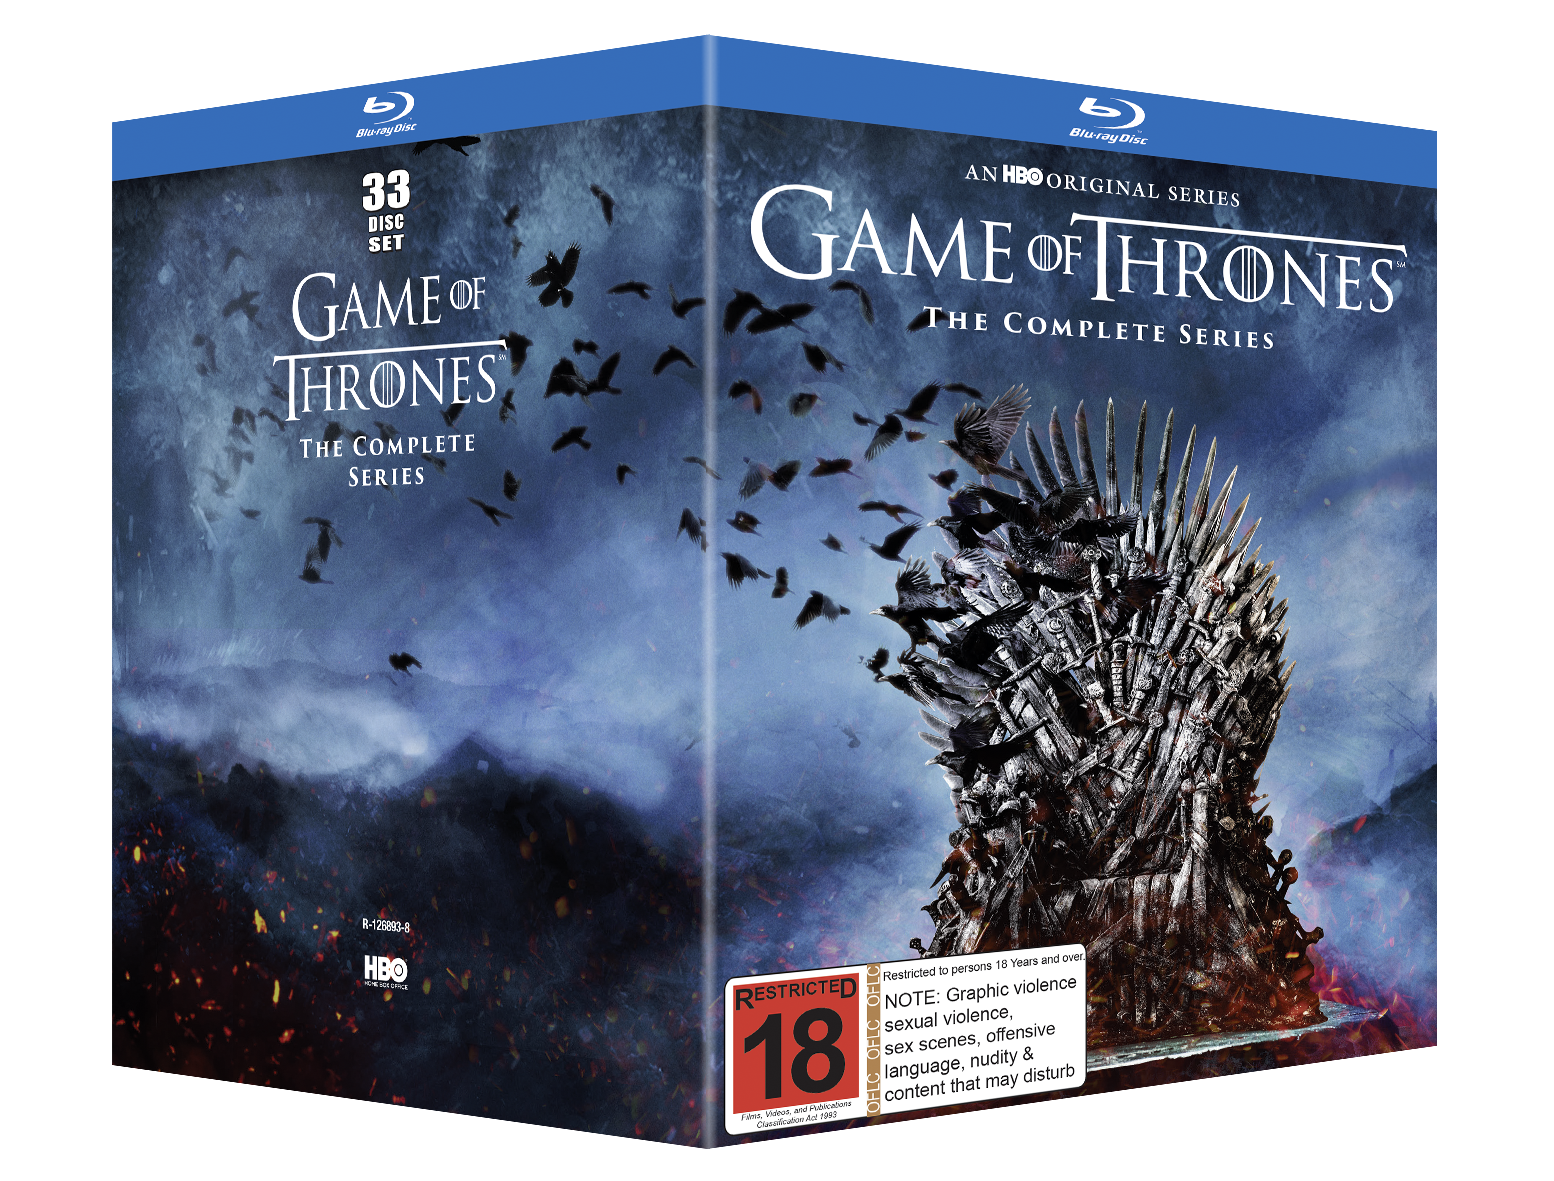 Game of Thrones Season 1-8 on Blu-ray image